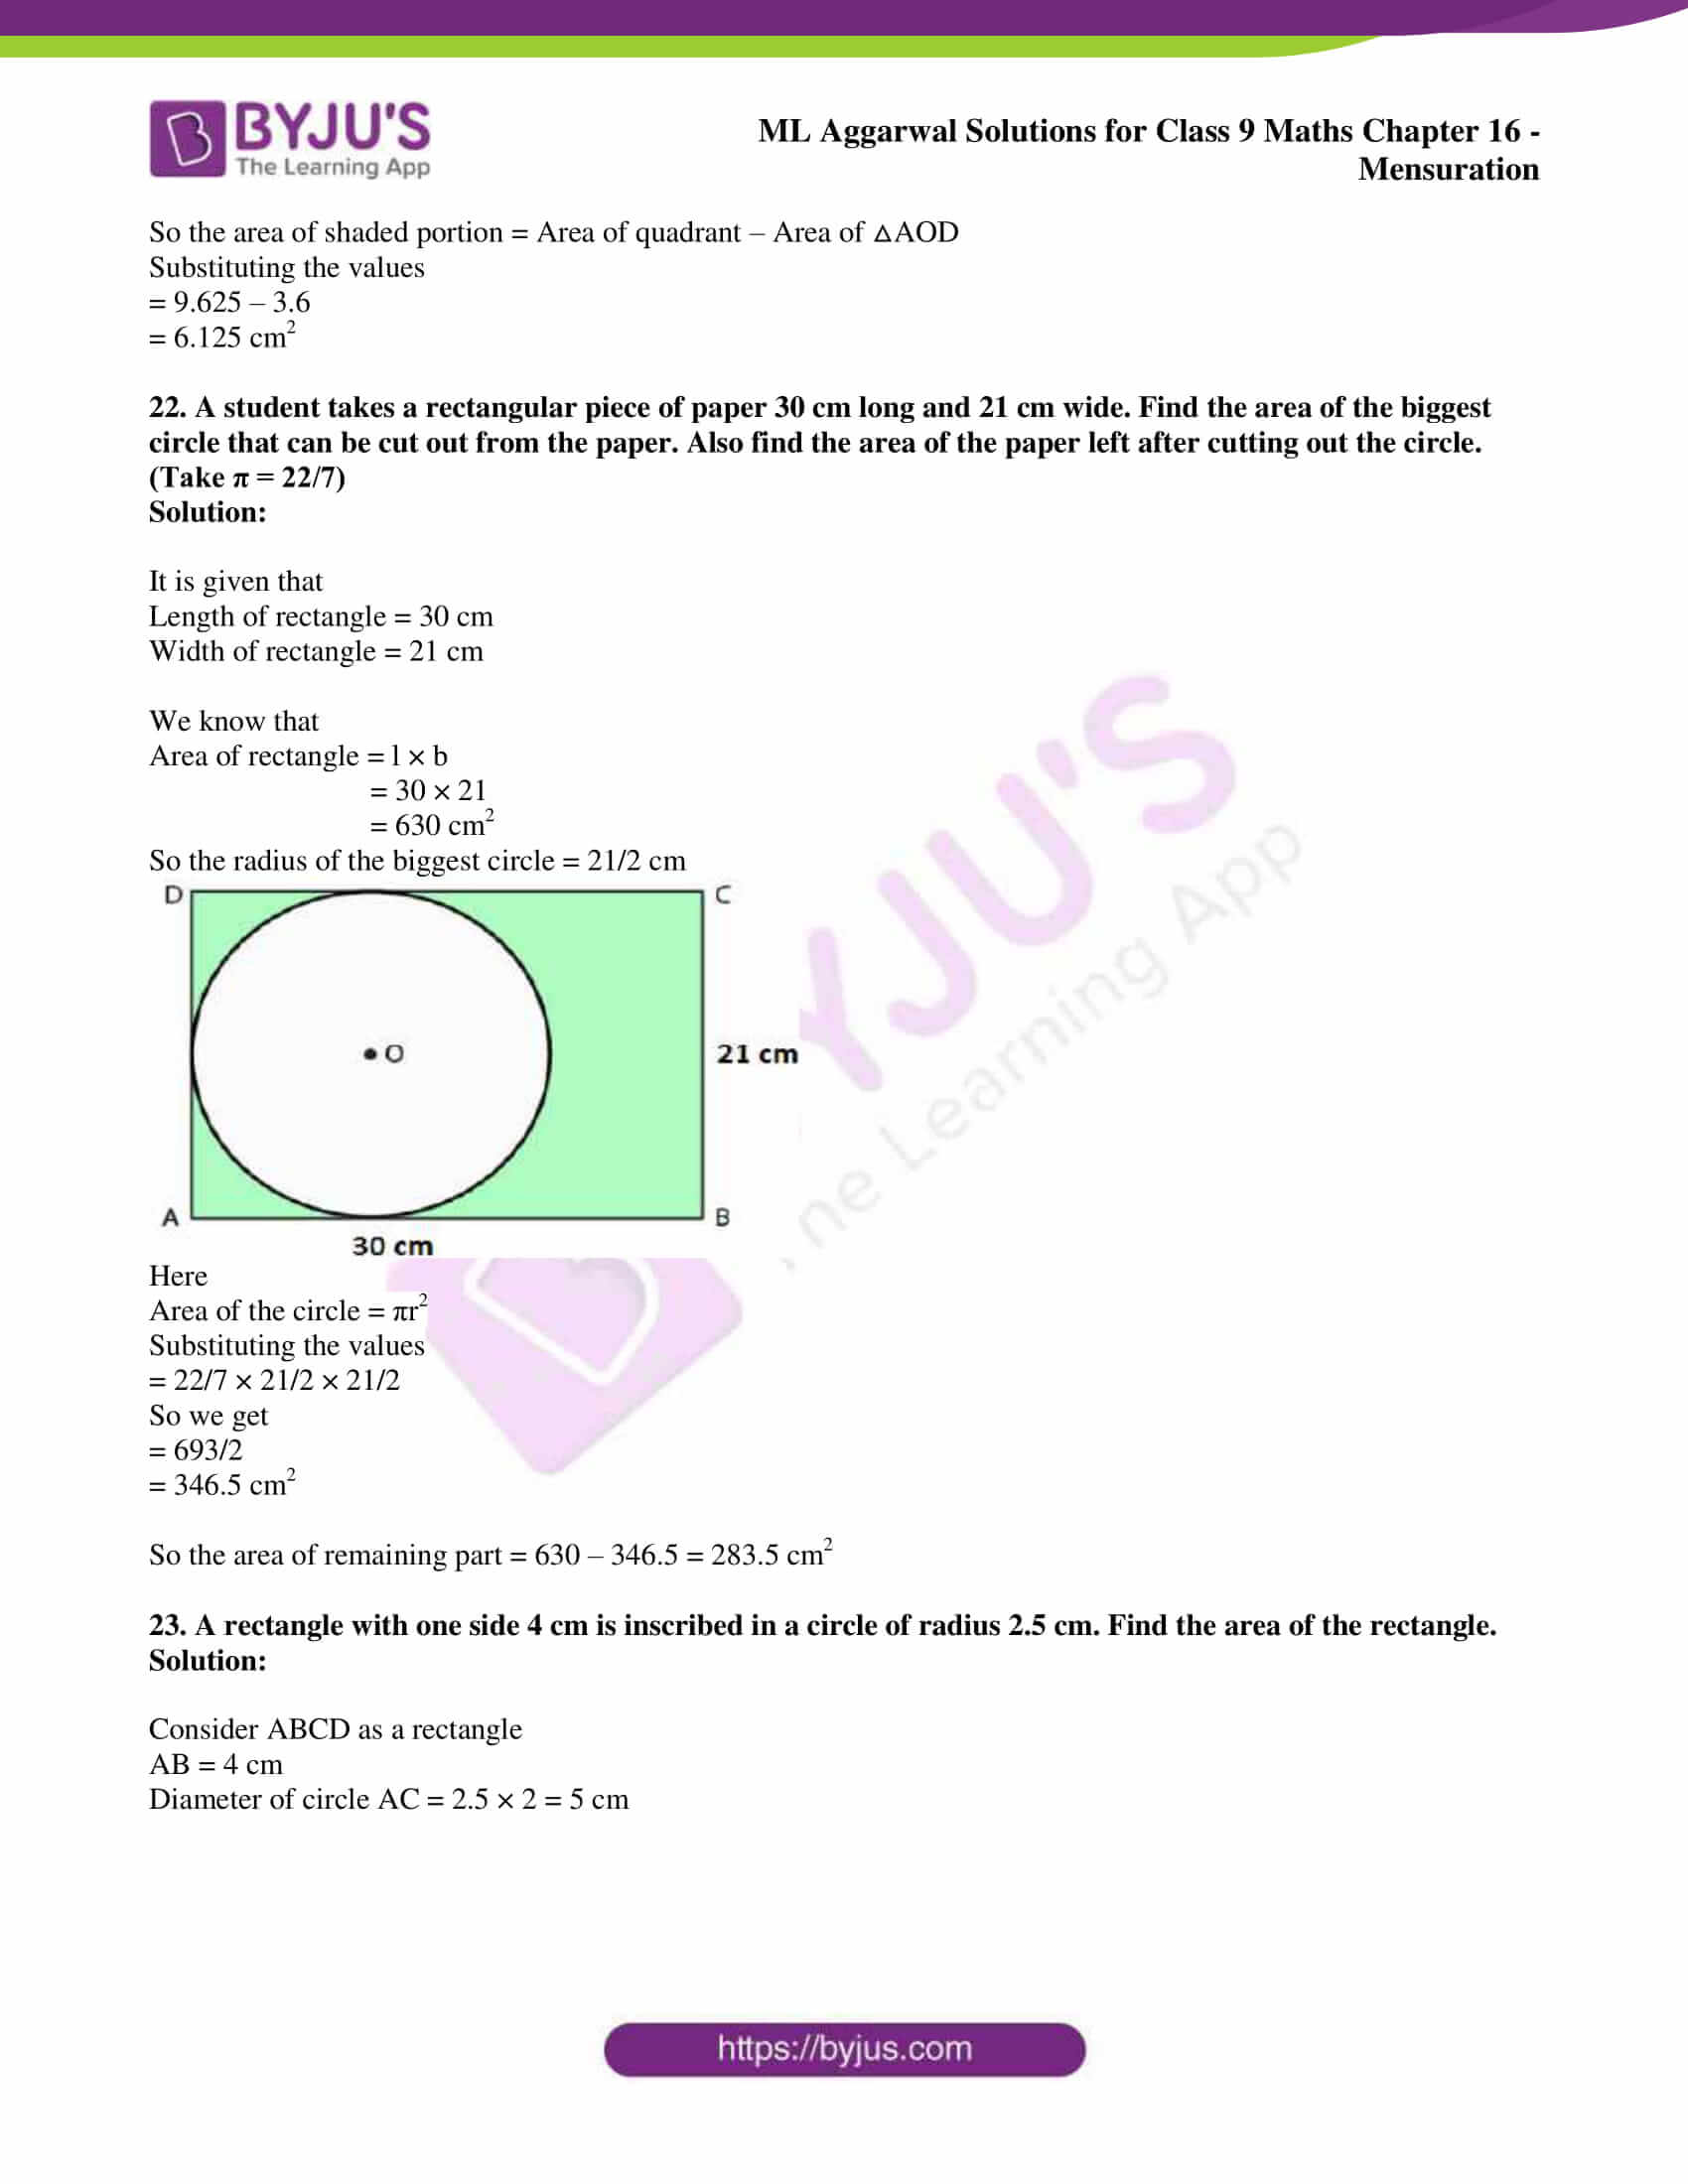 ml aggarwal solutions for class 9 maths chapter 16 090